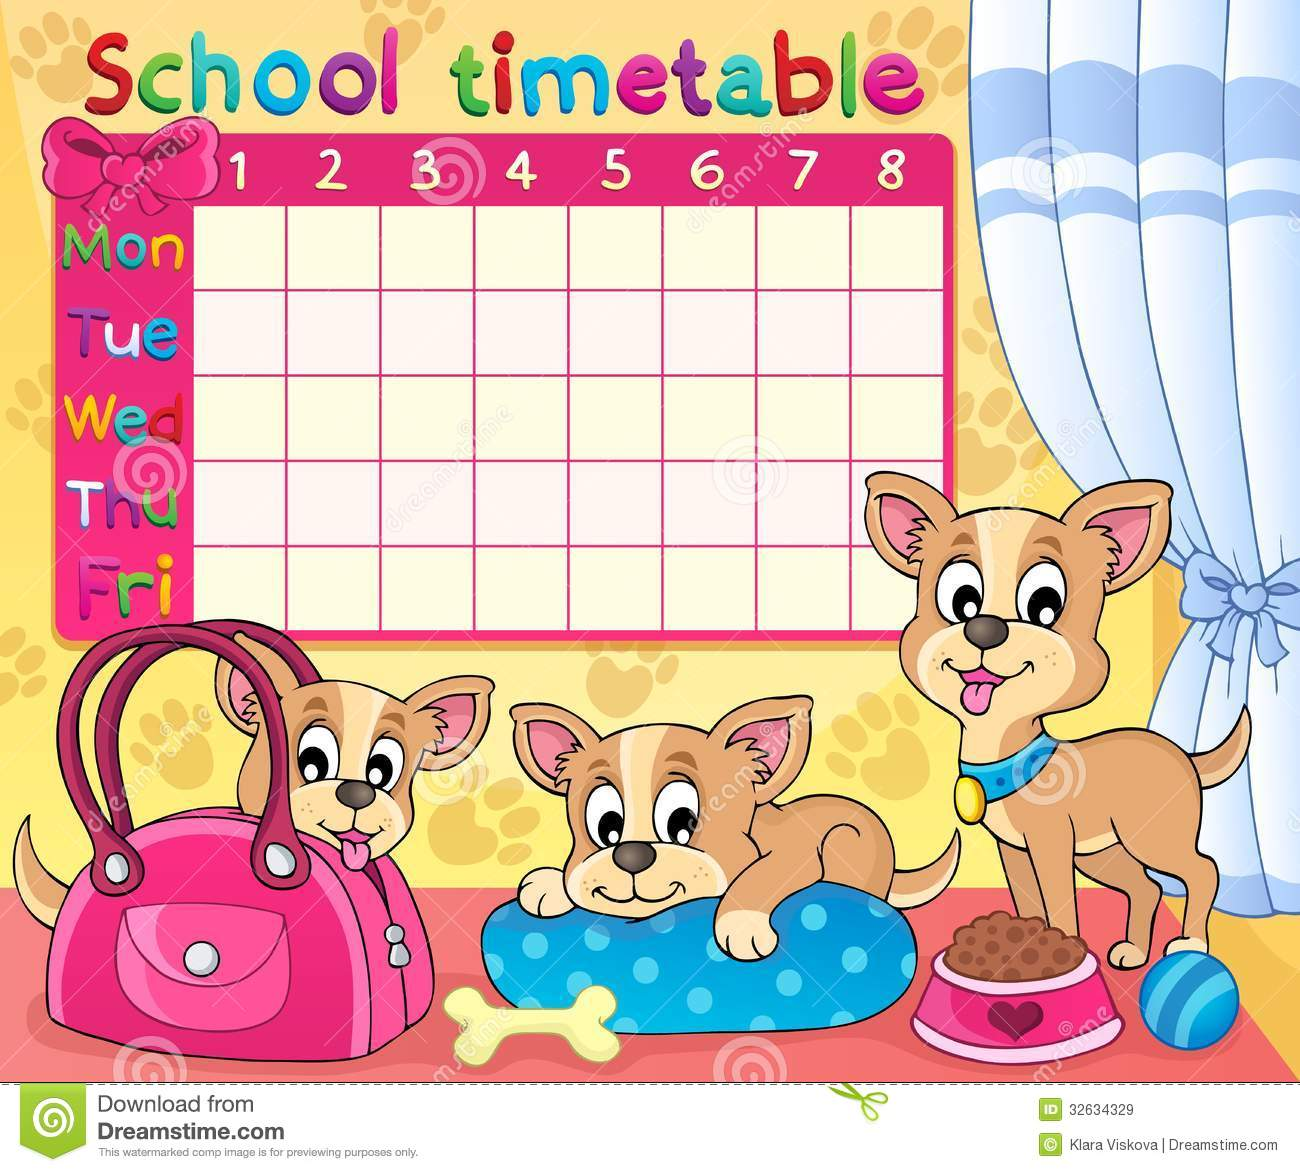 Drawing Tables For Kids : school timetable thematic image eps vector illustration 32634329 from www.tehroony.com size 1300 x 1172 jpeg 170kB